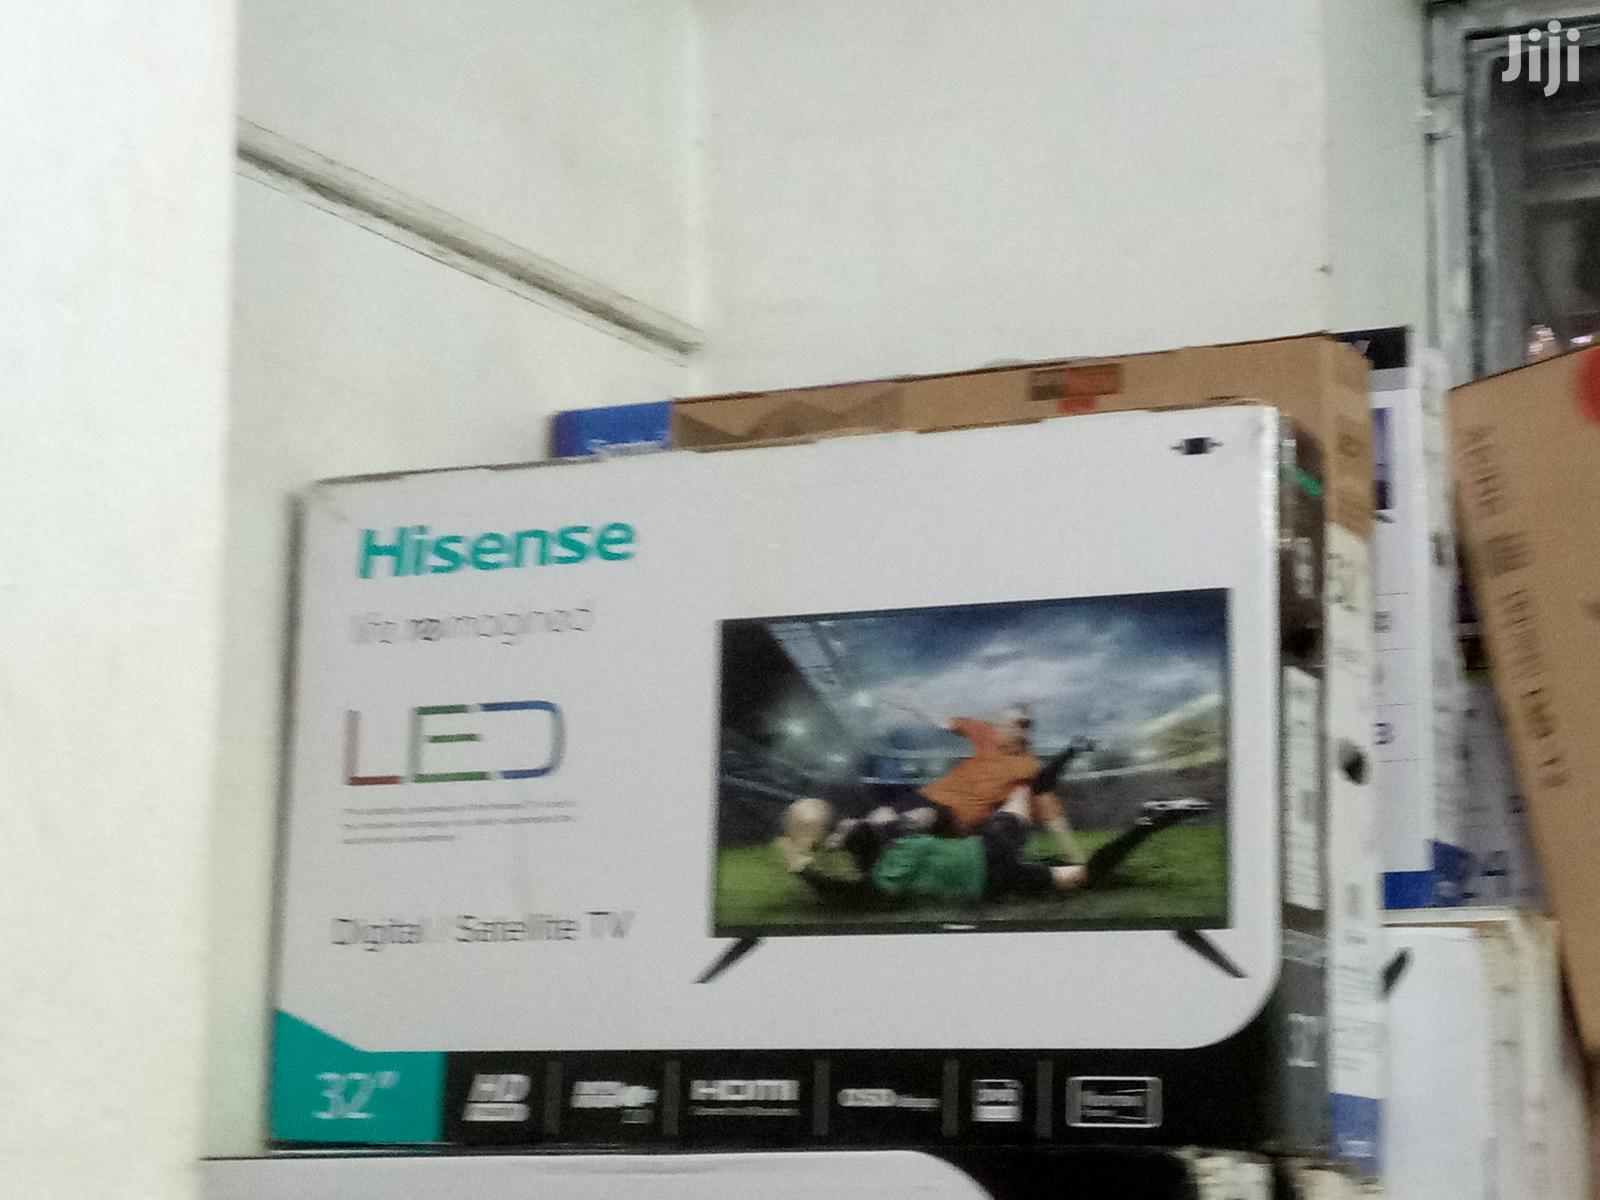 Hisense Flat Screen Digital TV 32 Inches